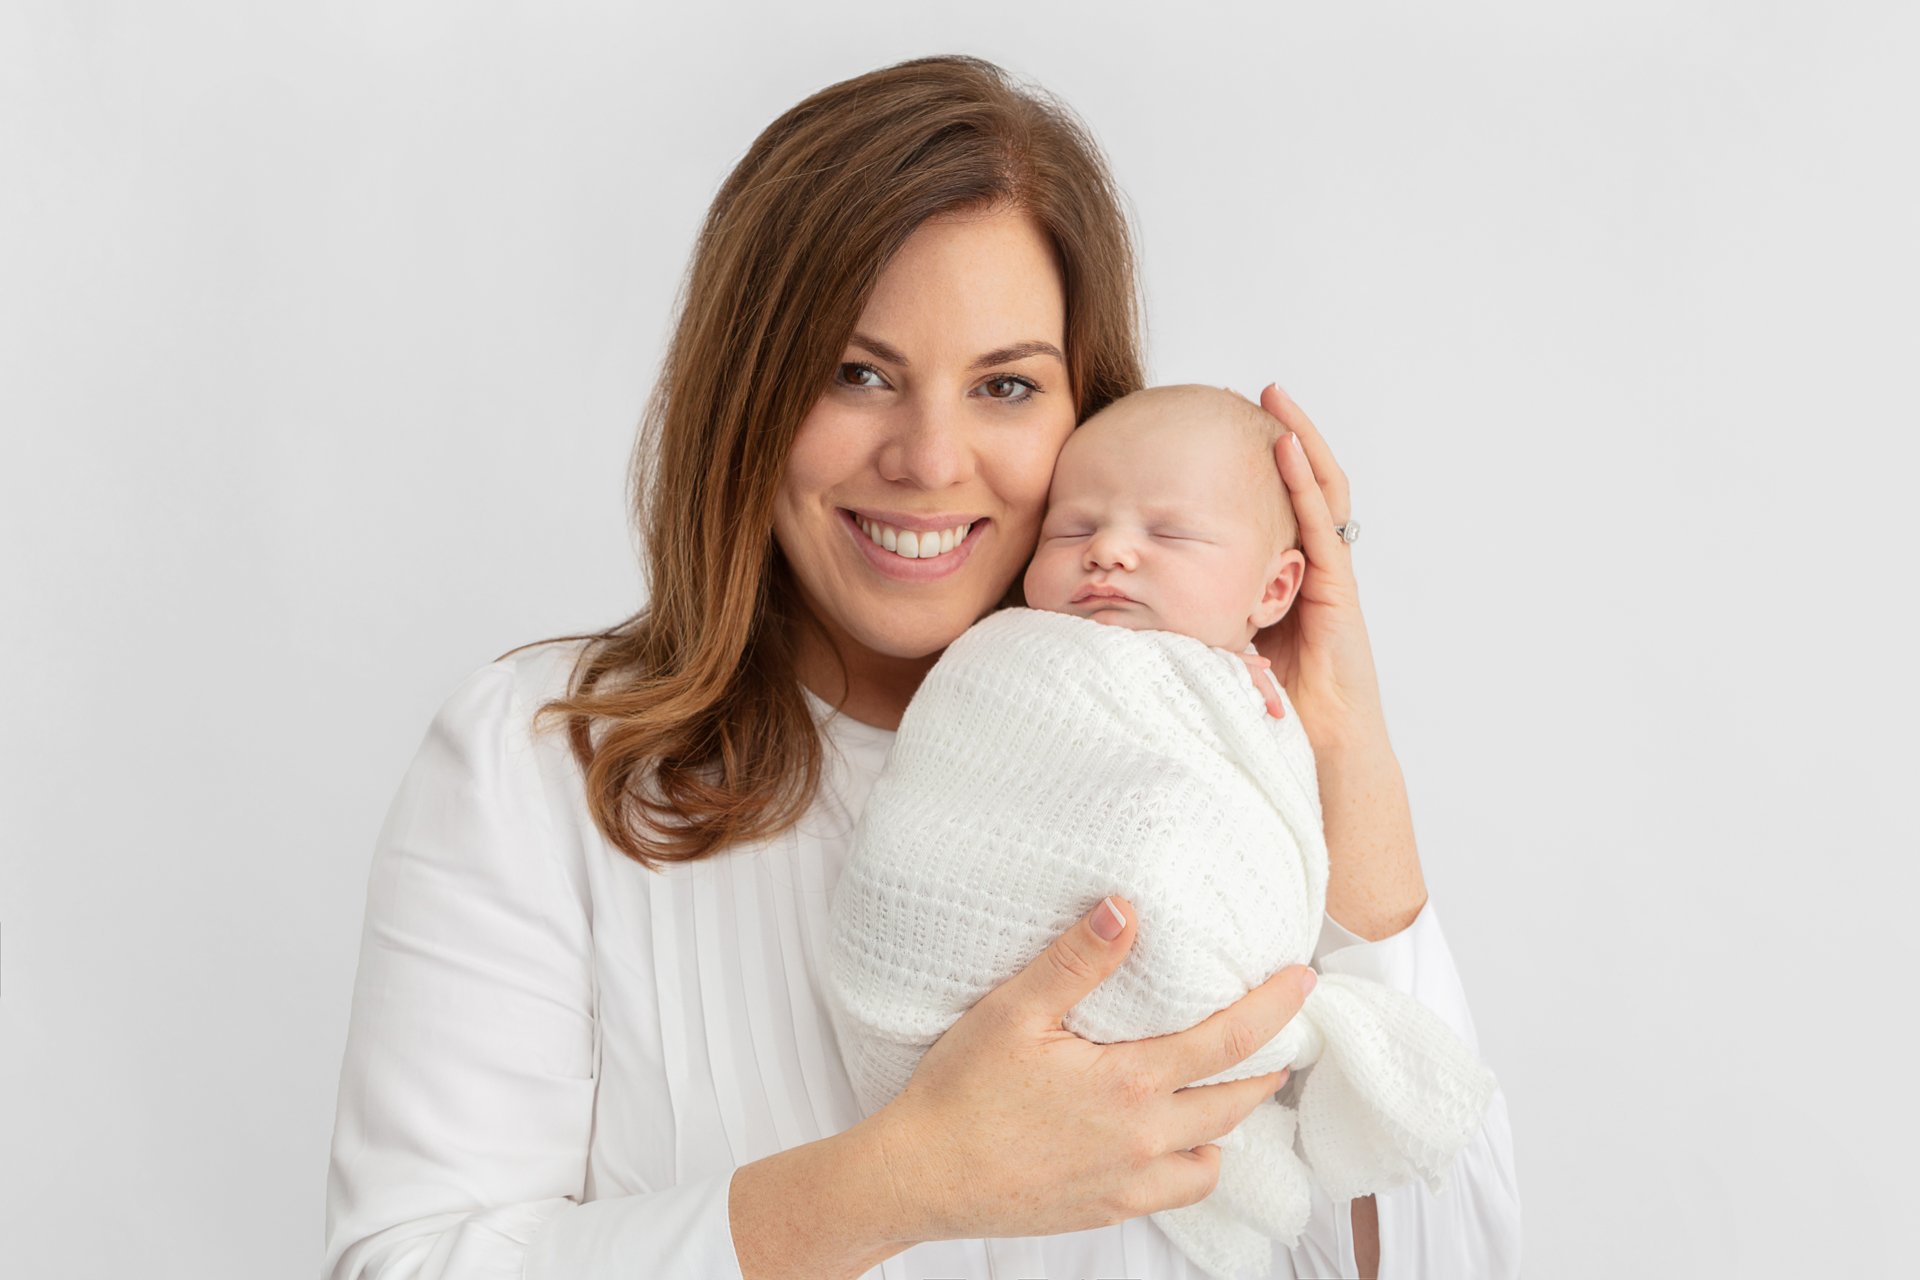 smiling Irish mom holding her newborn son against her cheek; mother and baby are in white